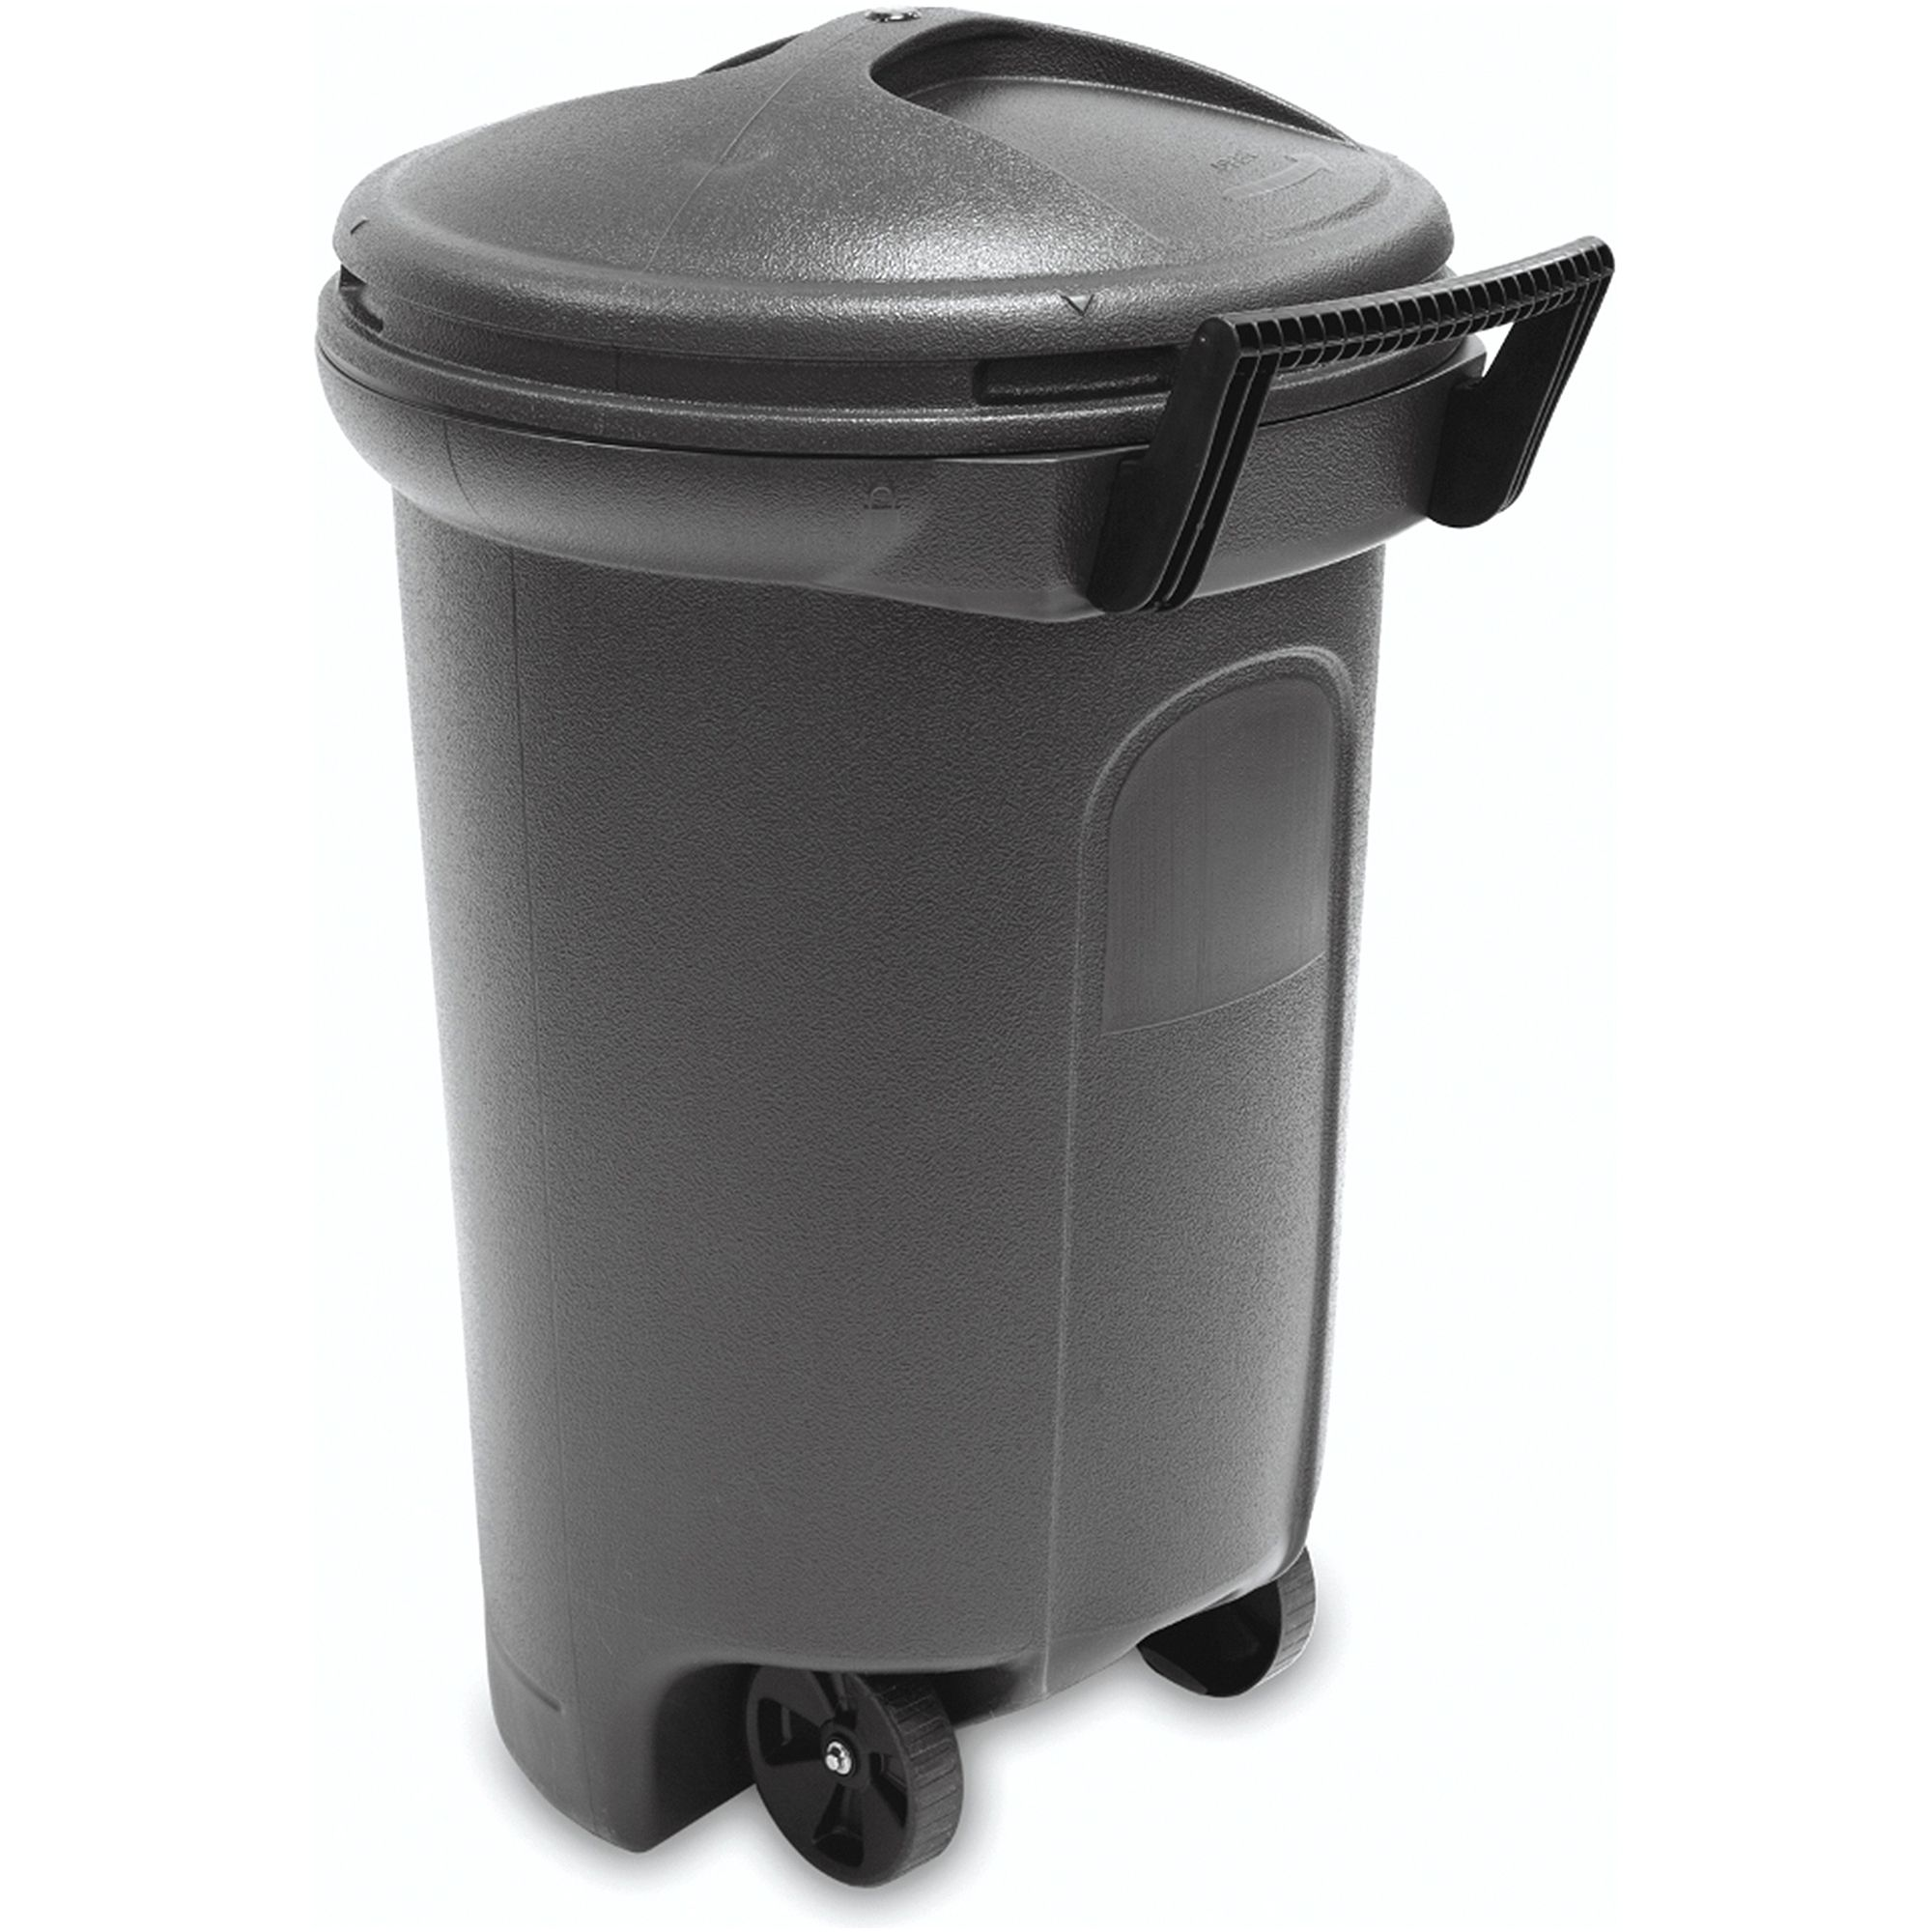 Outdoor Trash Can With Wheels Outside Trash Cans With Wheels  Useful Itemsneeds  Pinterest  Wheels